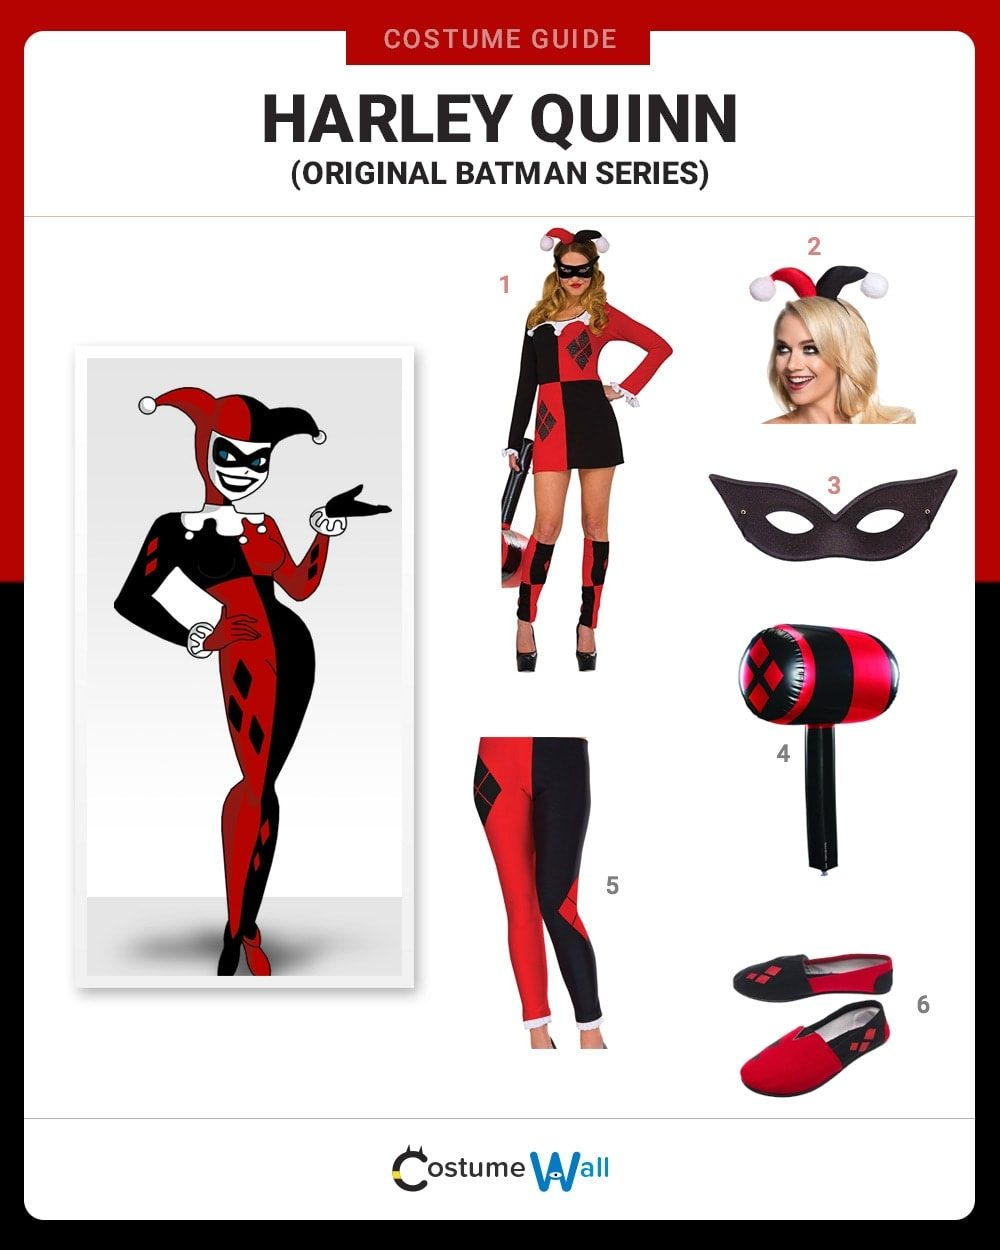 Original Harley Quinn Costume Guide